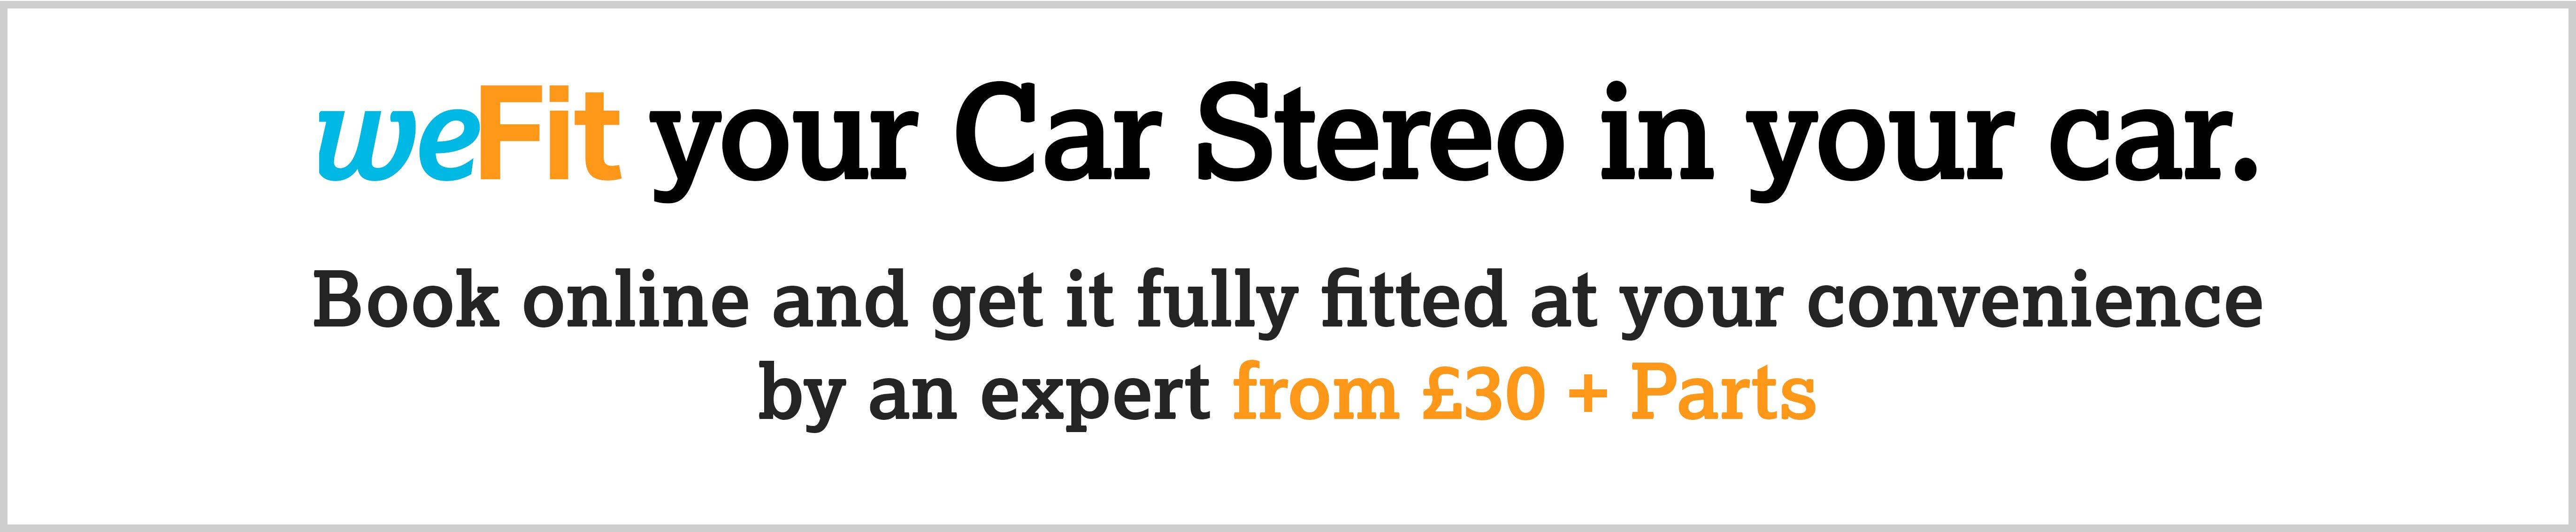 weFit your car stereo